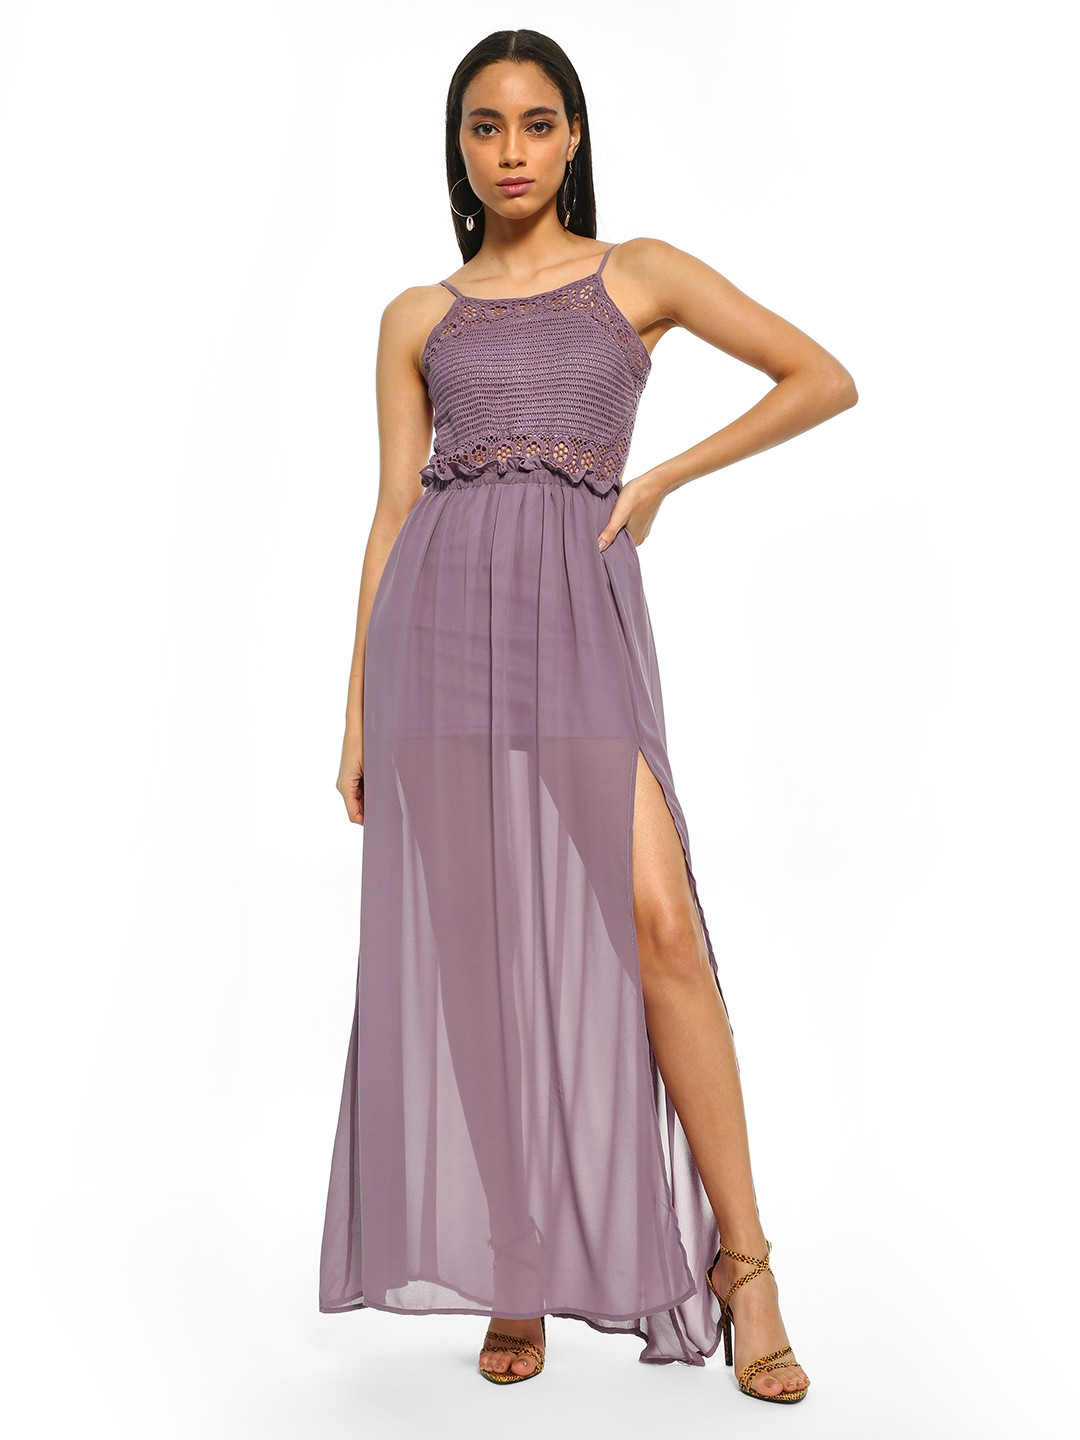 Iris Lavender Crochet Lace Maxi Dress 1